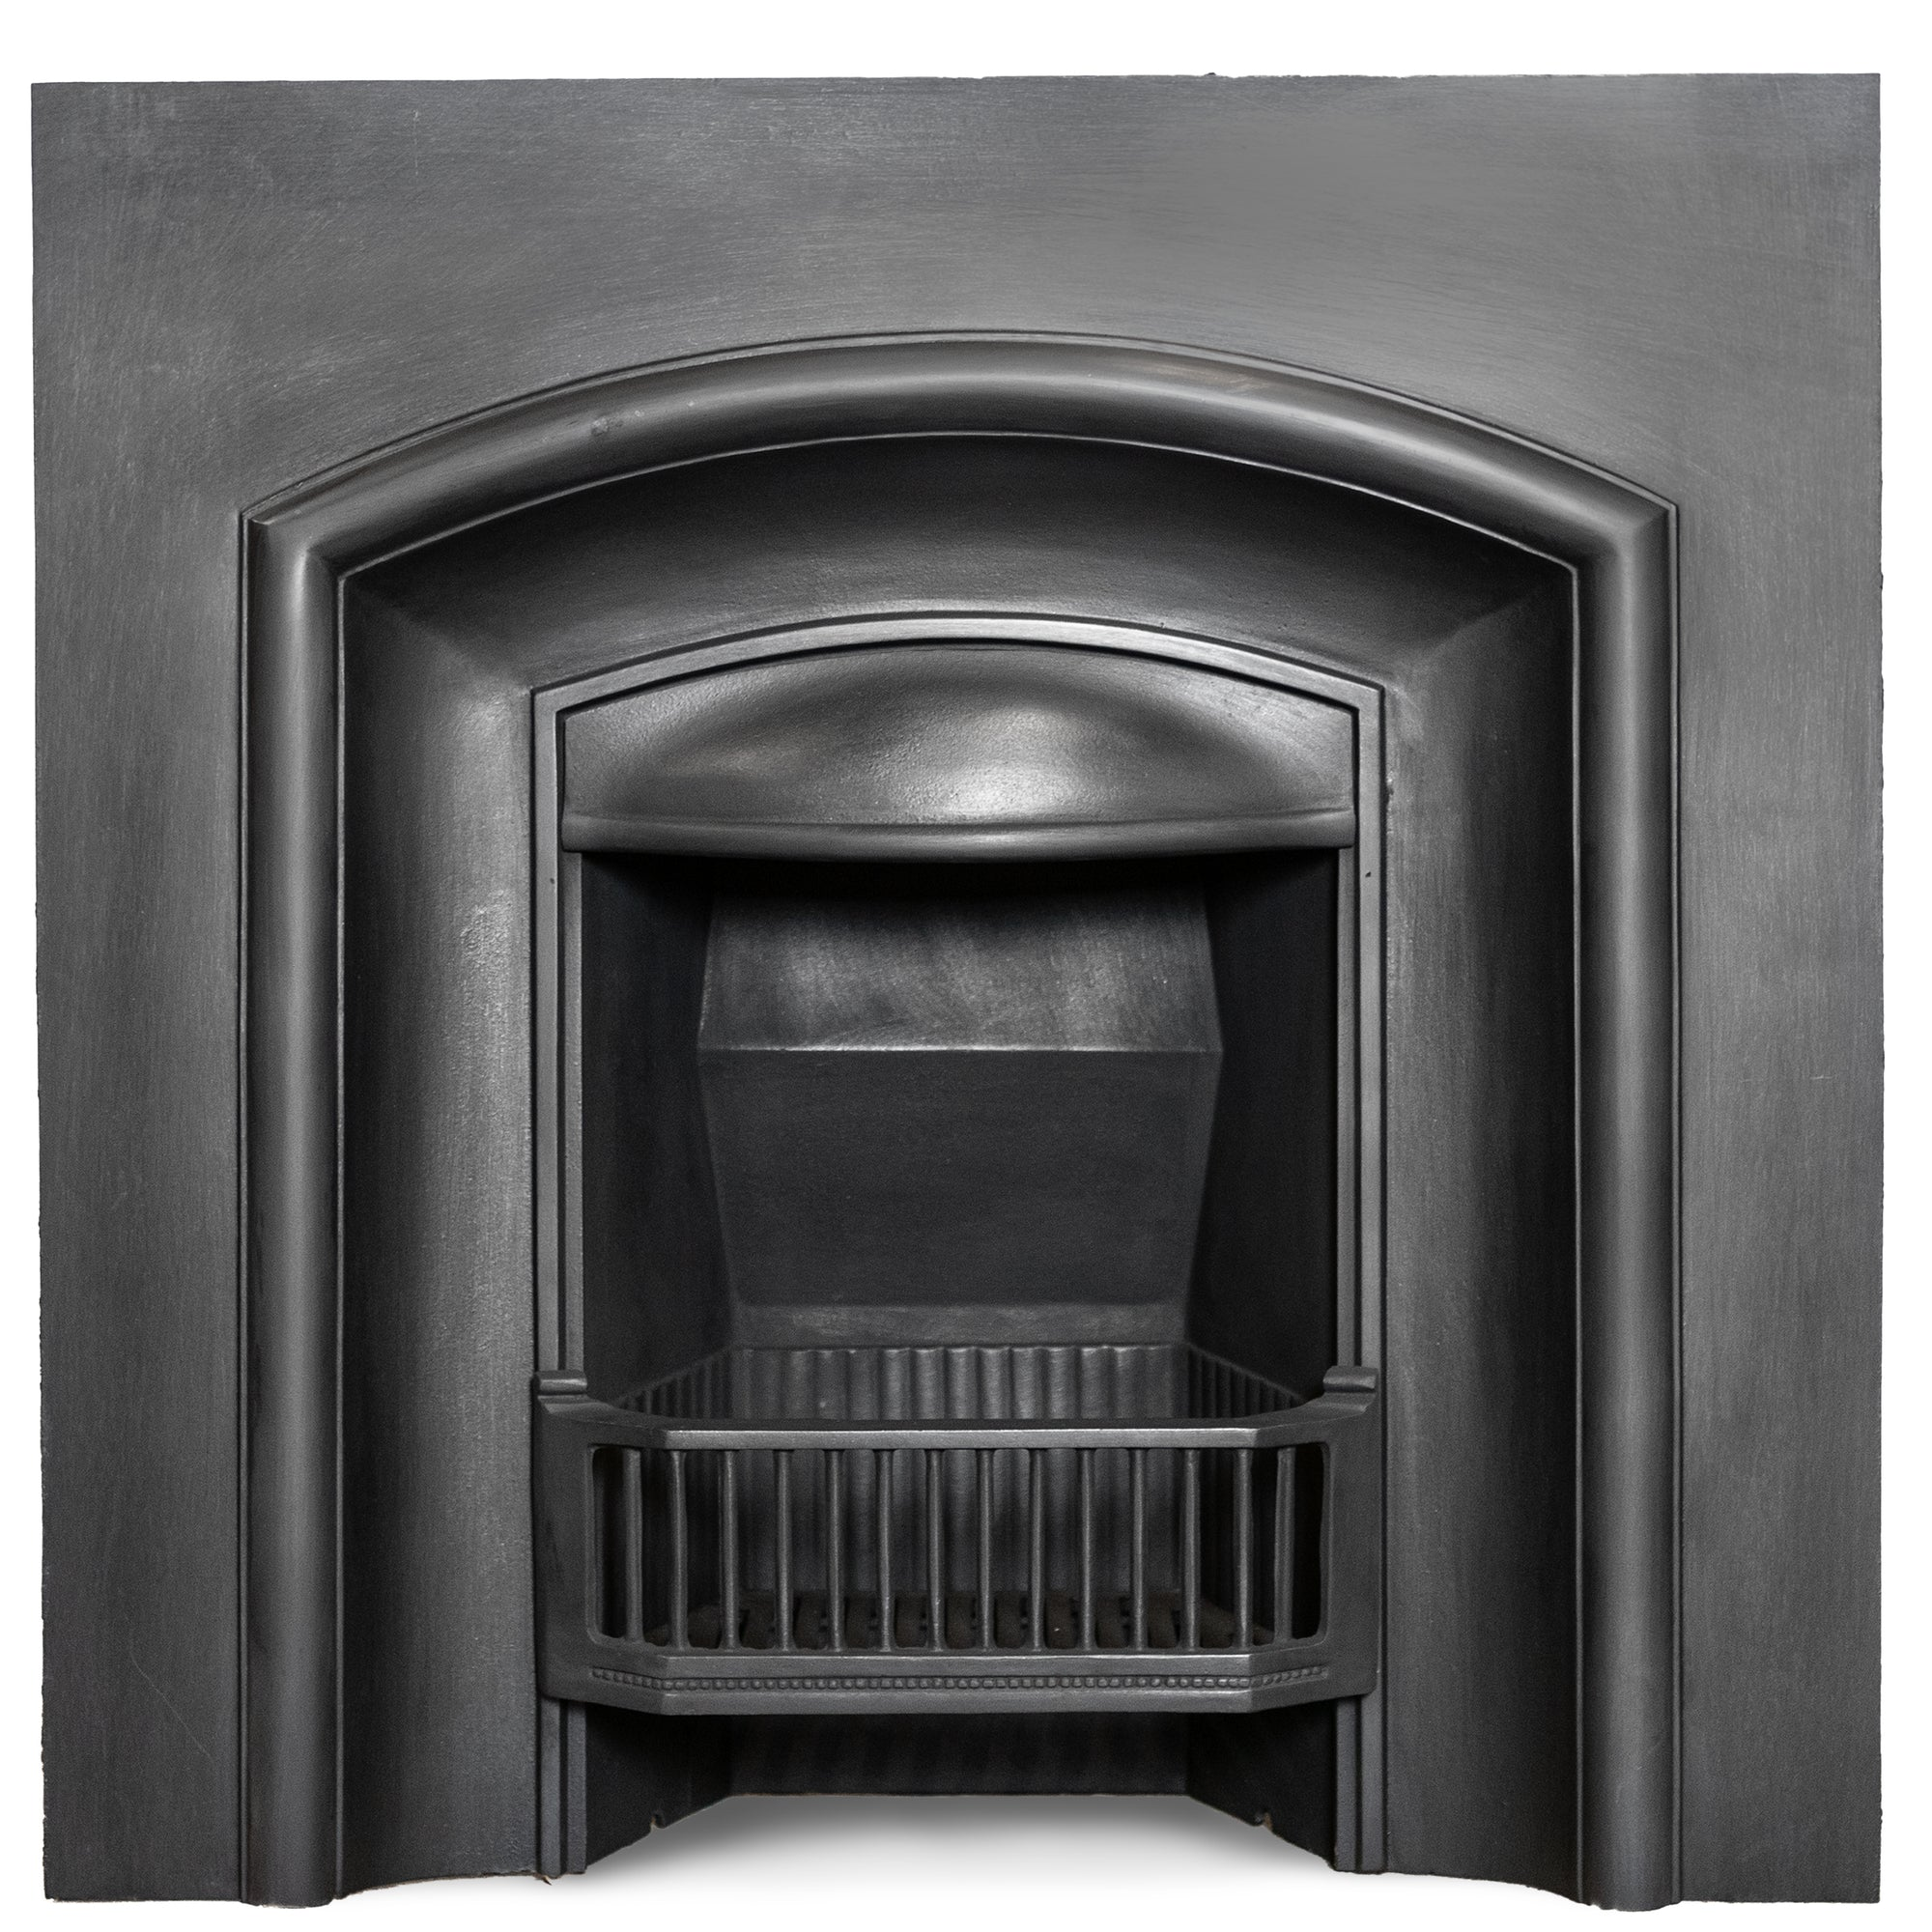 Reclaimed Cast Iron Fireplace Insert | The Architectural Forum